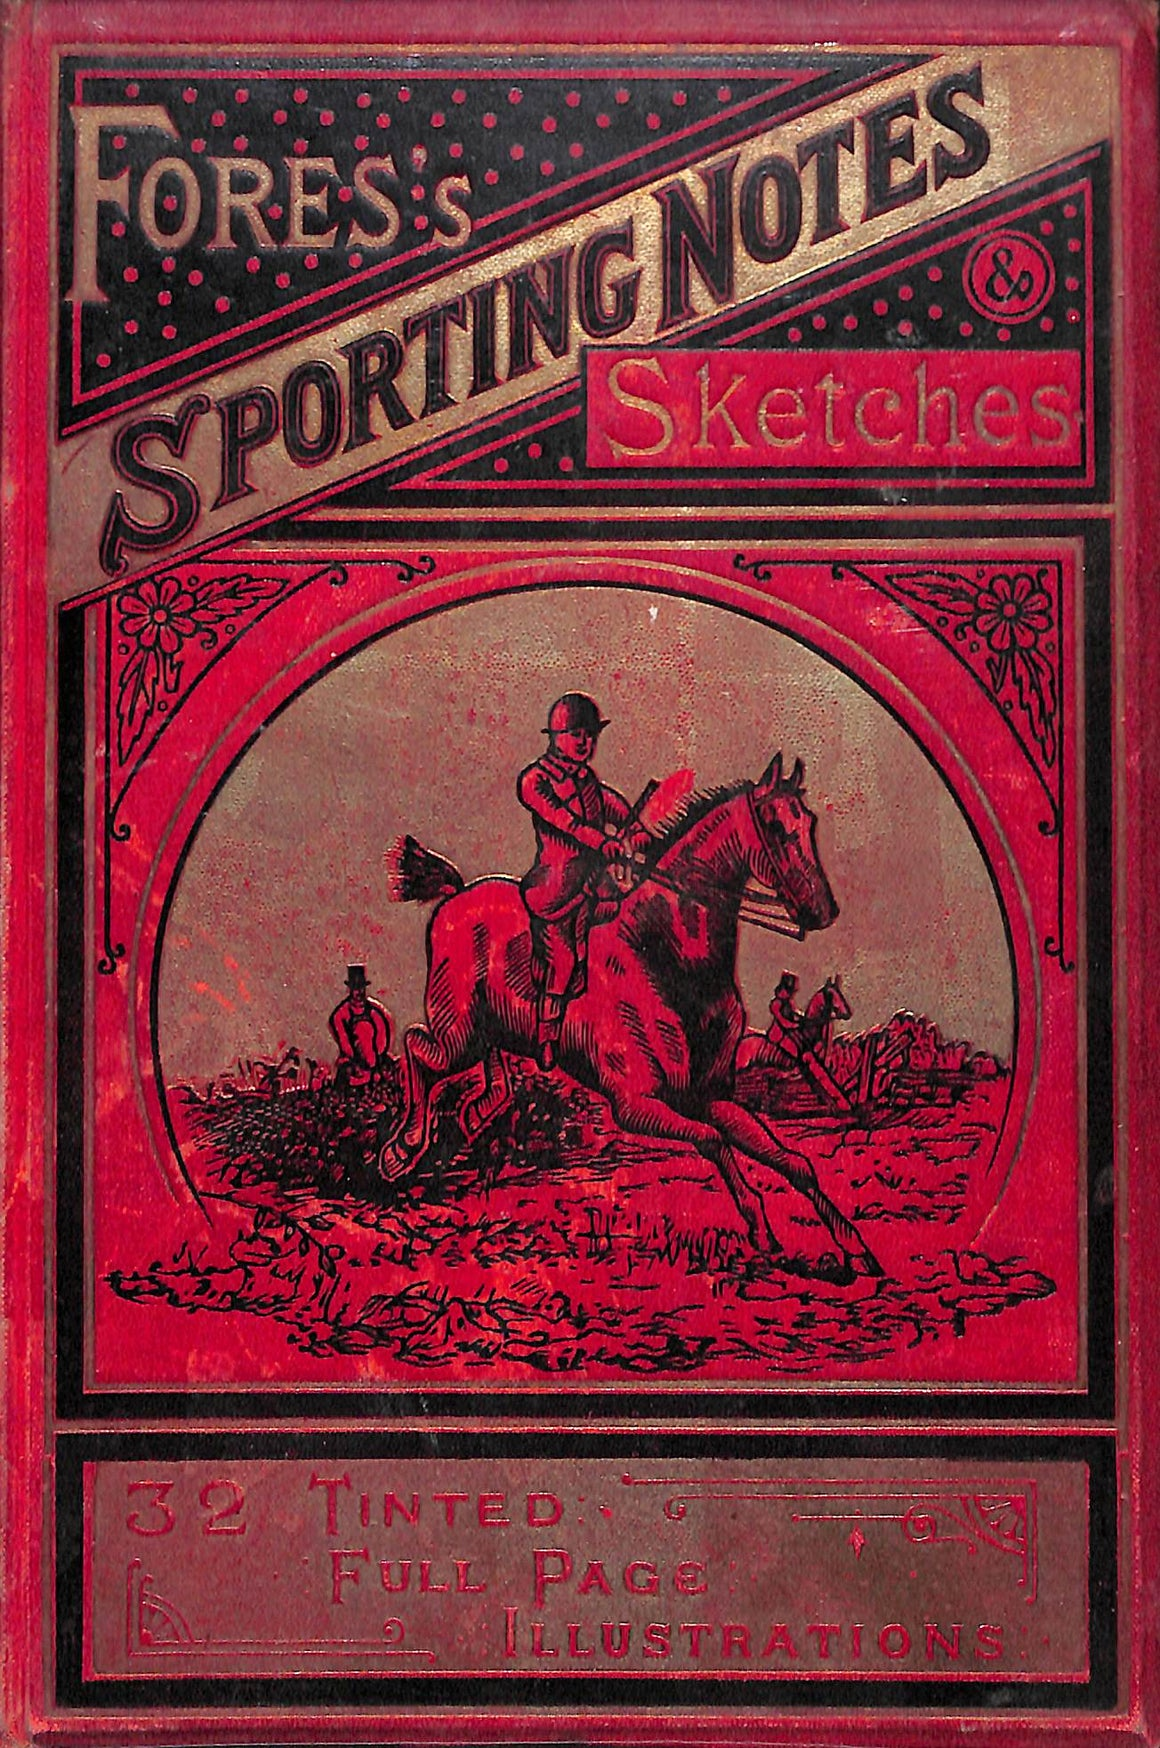 """Fores's Sporting Notes & Sketches Vol. XIV. 1897"""